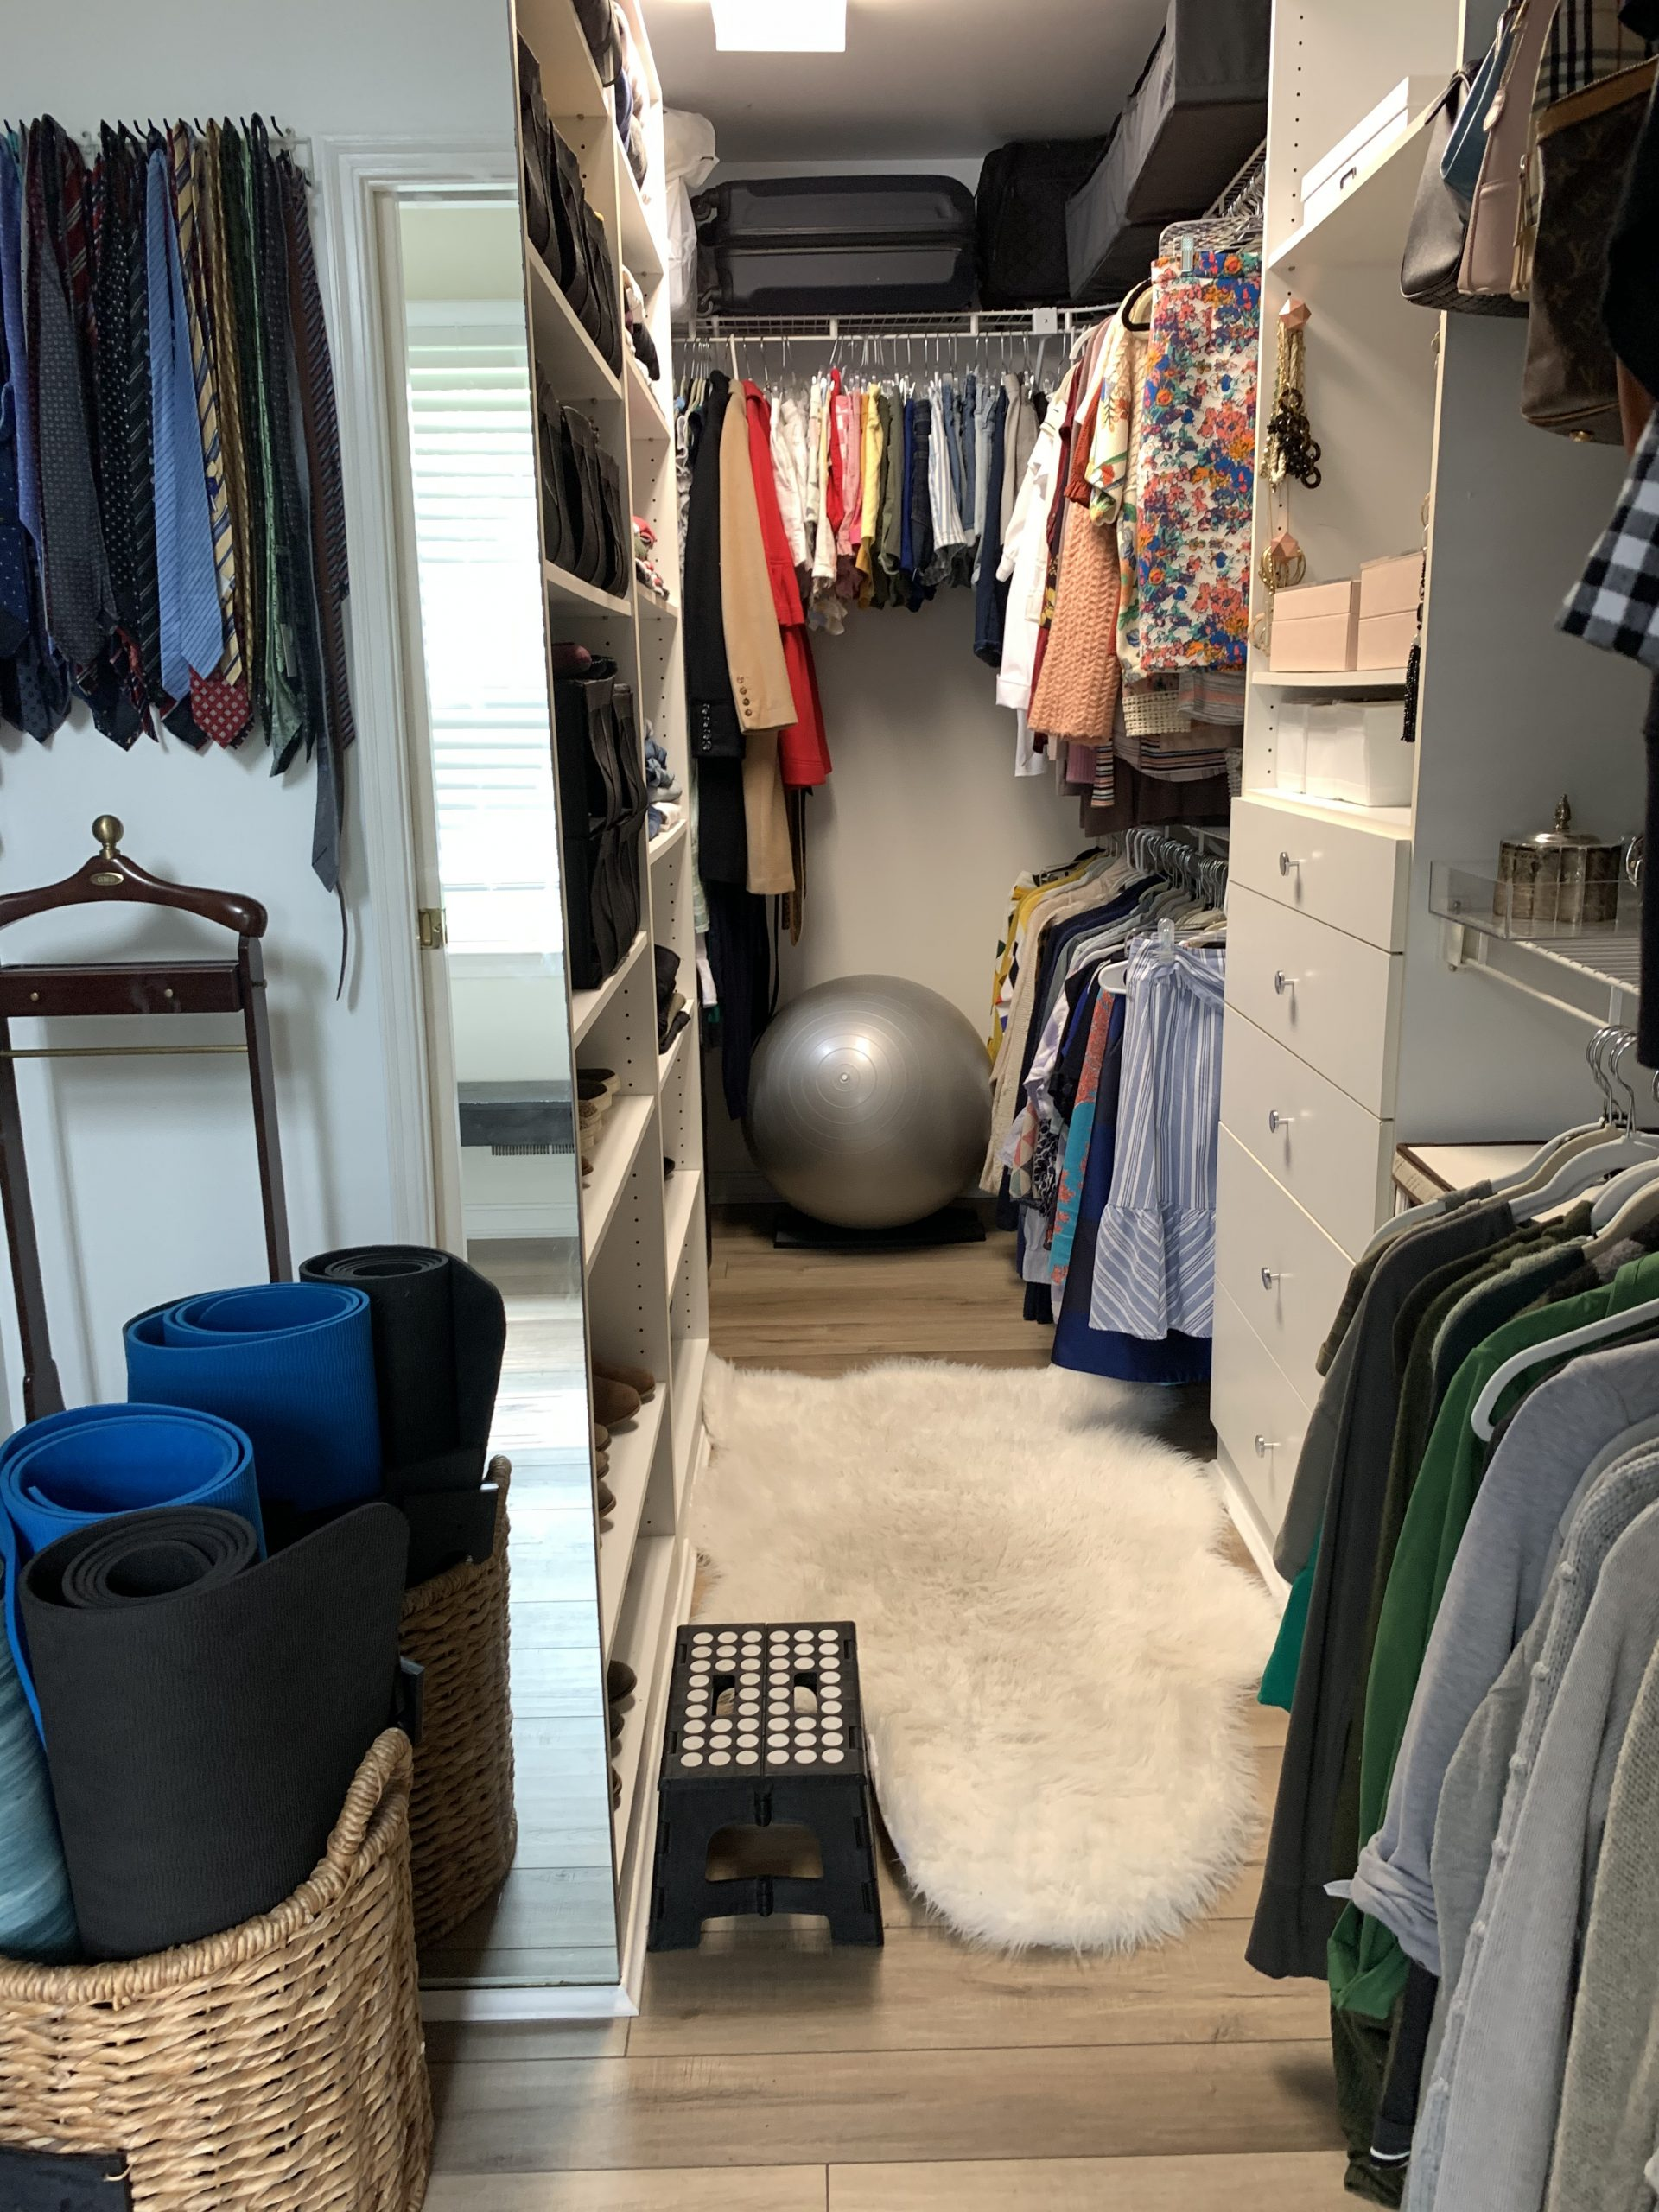 Closet Update Using Ideas From The Home Edit~ White Cottage Home & Living